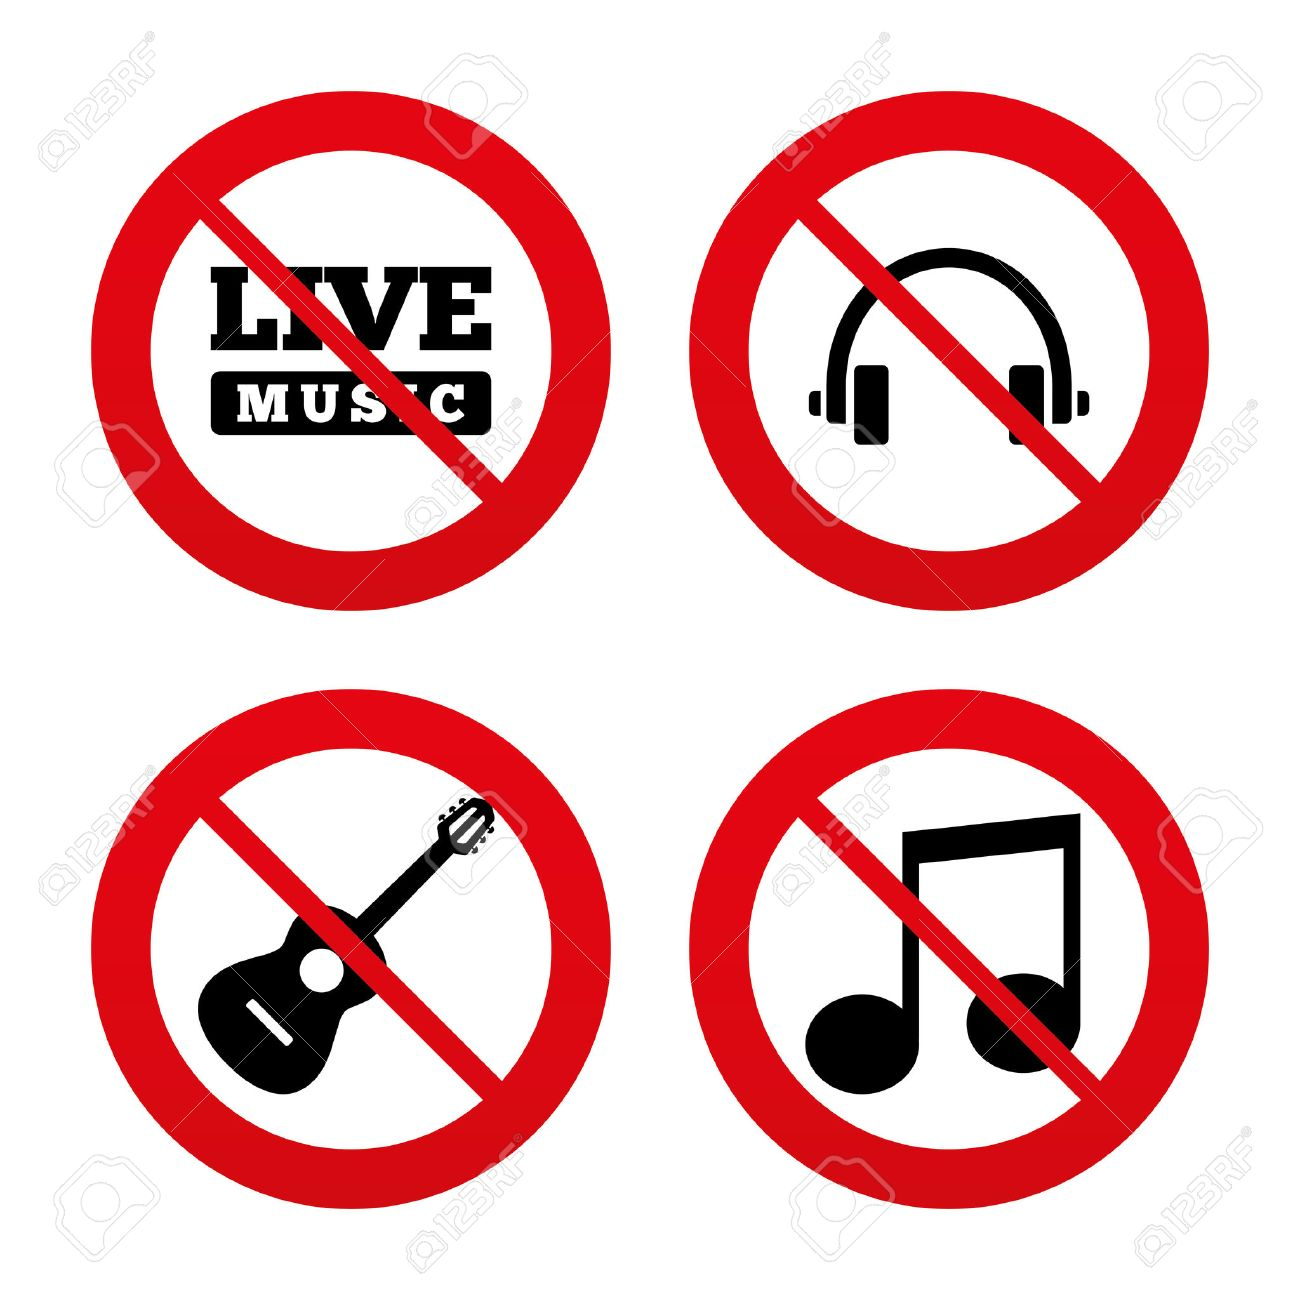 No ban or stop signs musical elements icons musical note key no ban or stop signs musical elements icons musical note key and live biocorpaavc